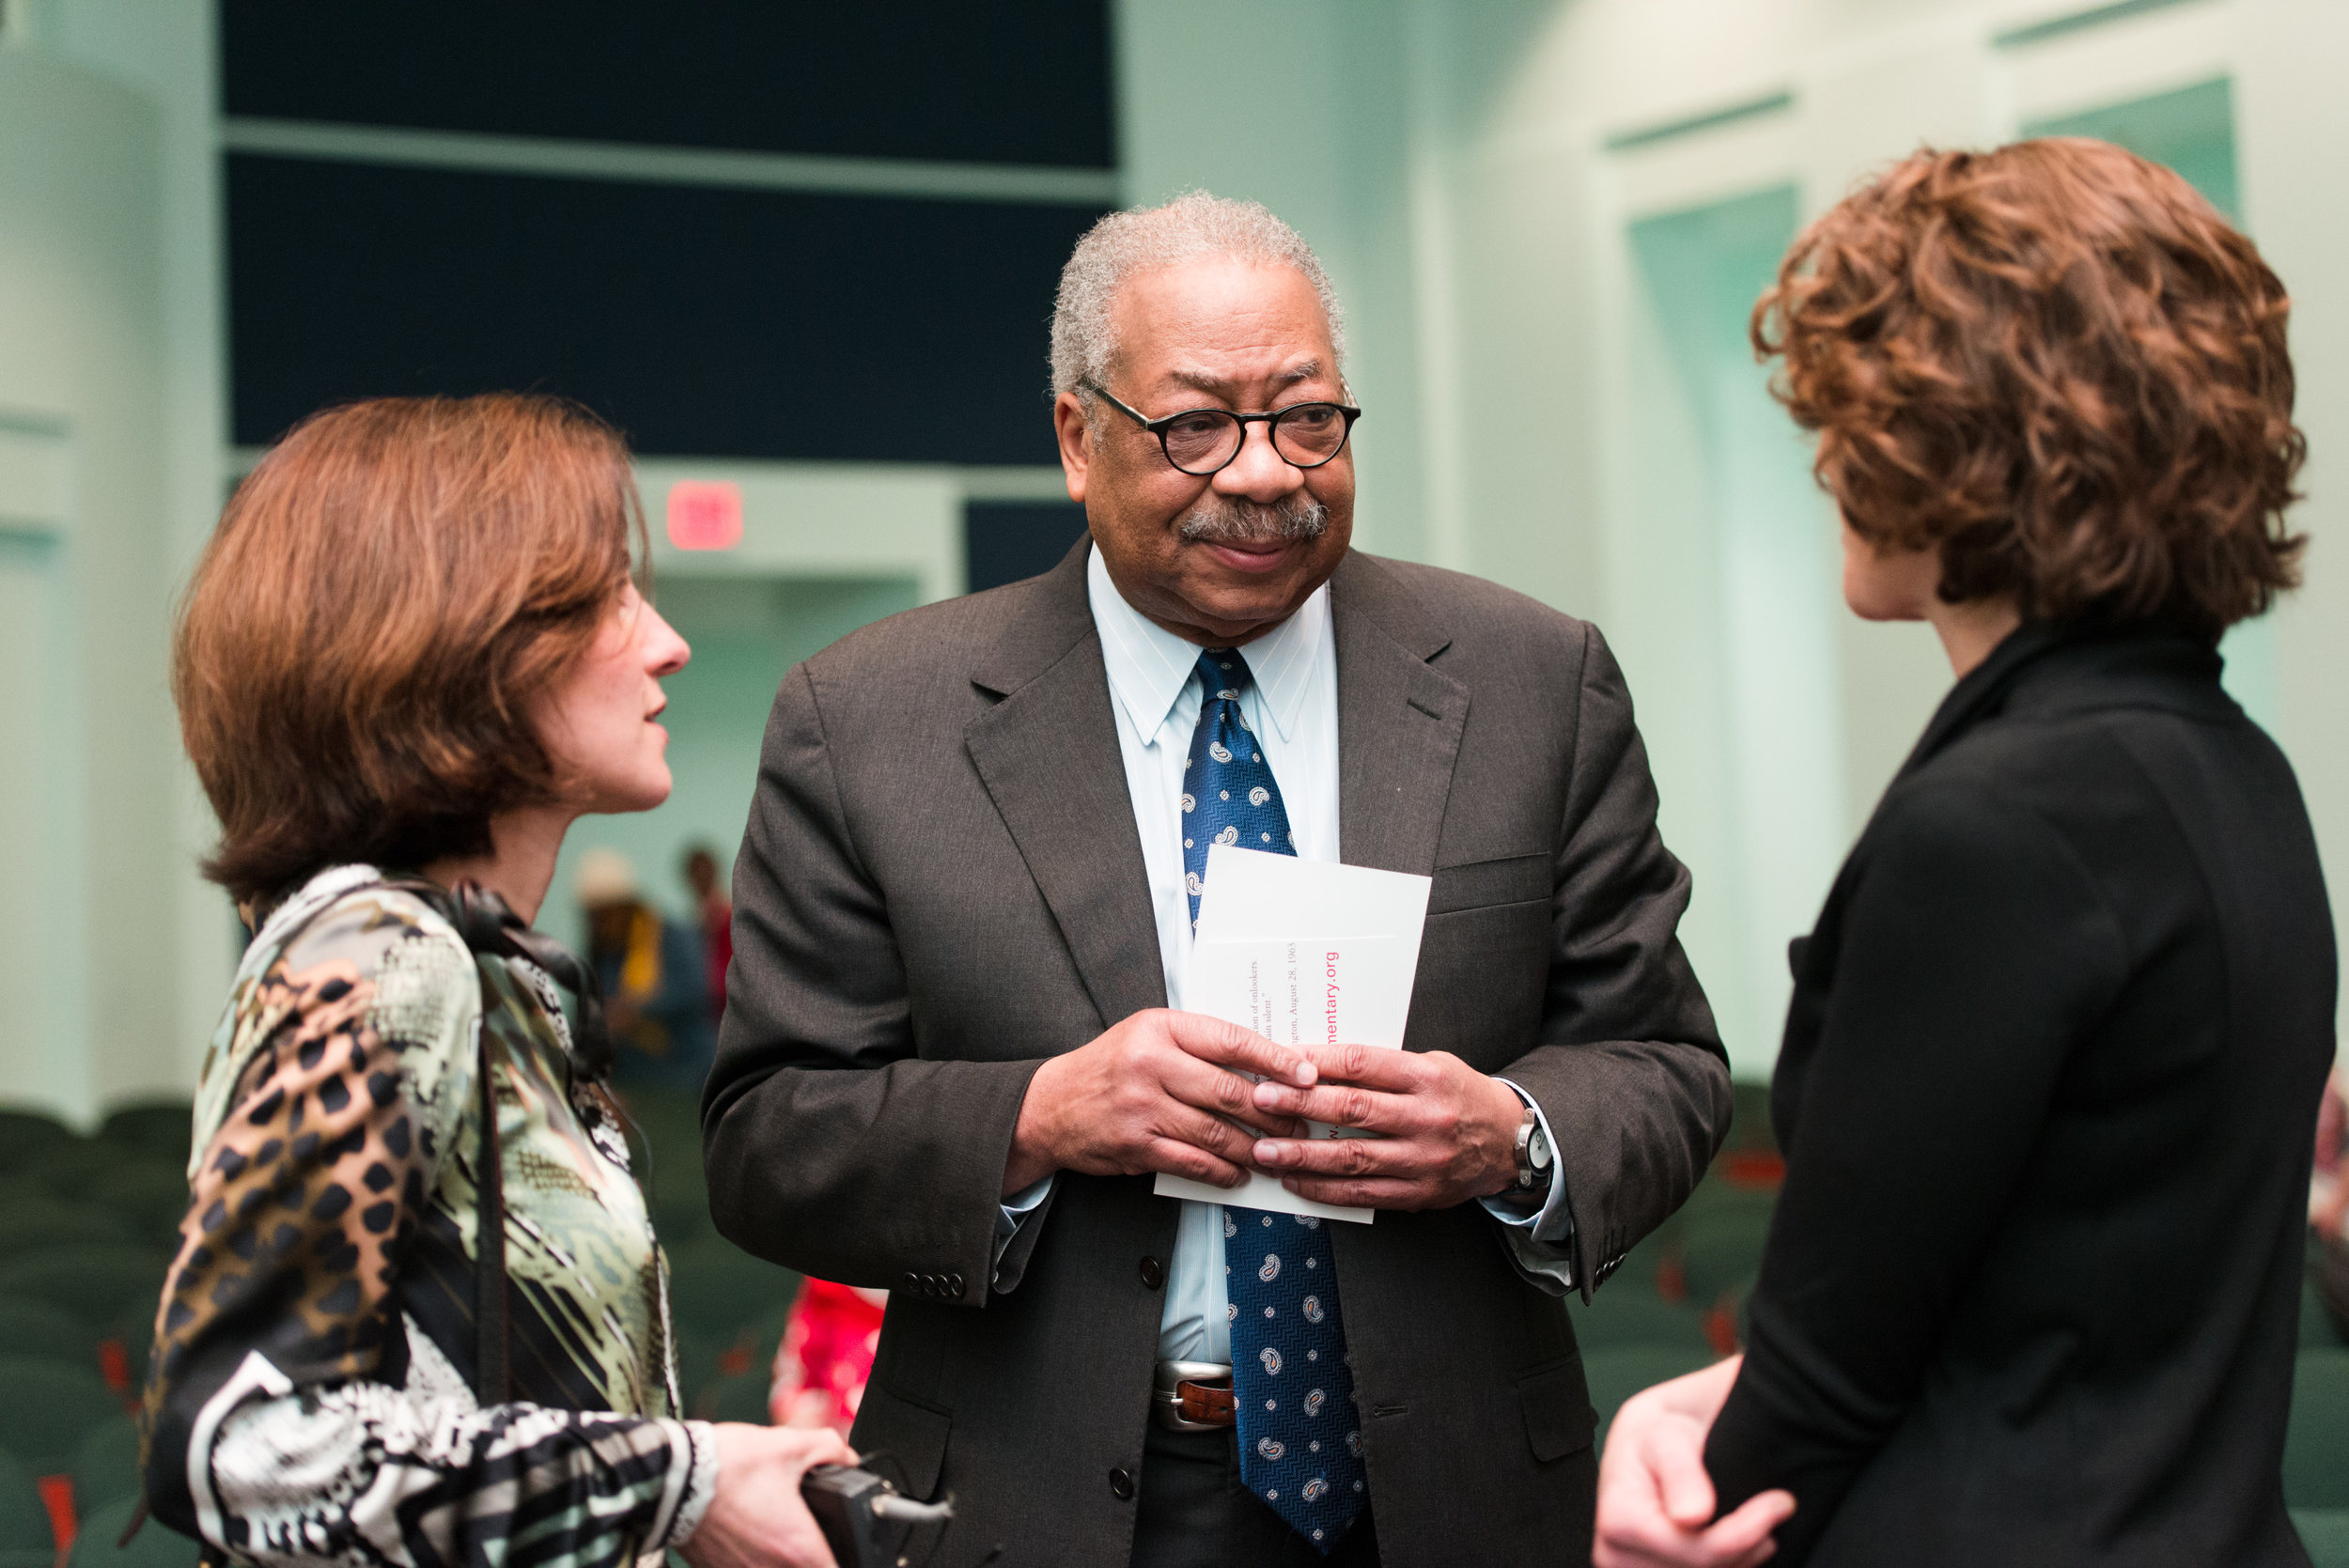 Clement Price with Rachel Pasternak (left) and Rachel Fisher (right) at the Institute for Ethnicity, Culture and the Modern Experience's screening of  Joachim Prinz: I Shall Not Be Silent  at the Newark Museum, 2014.